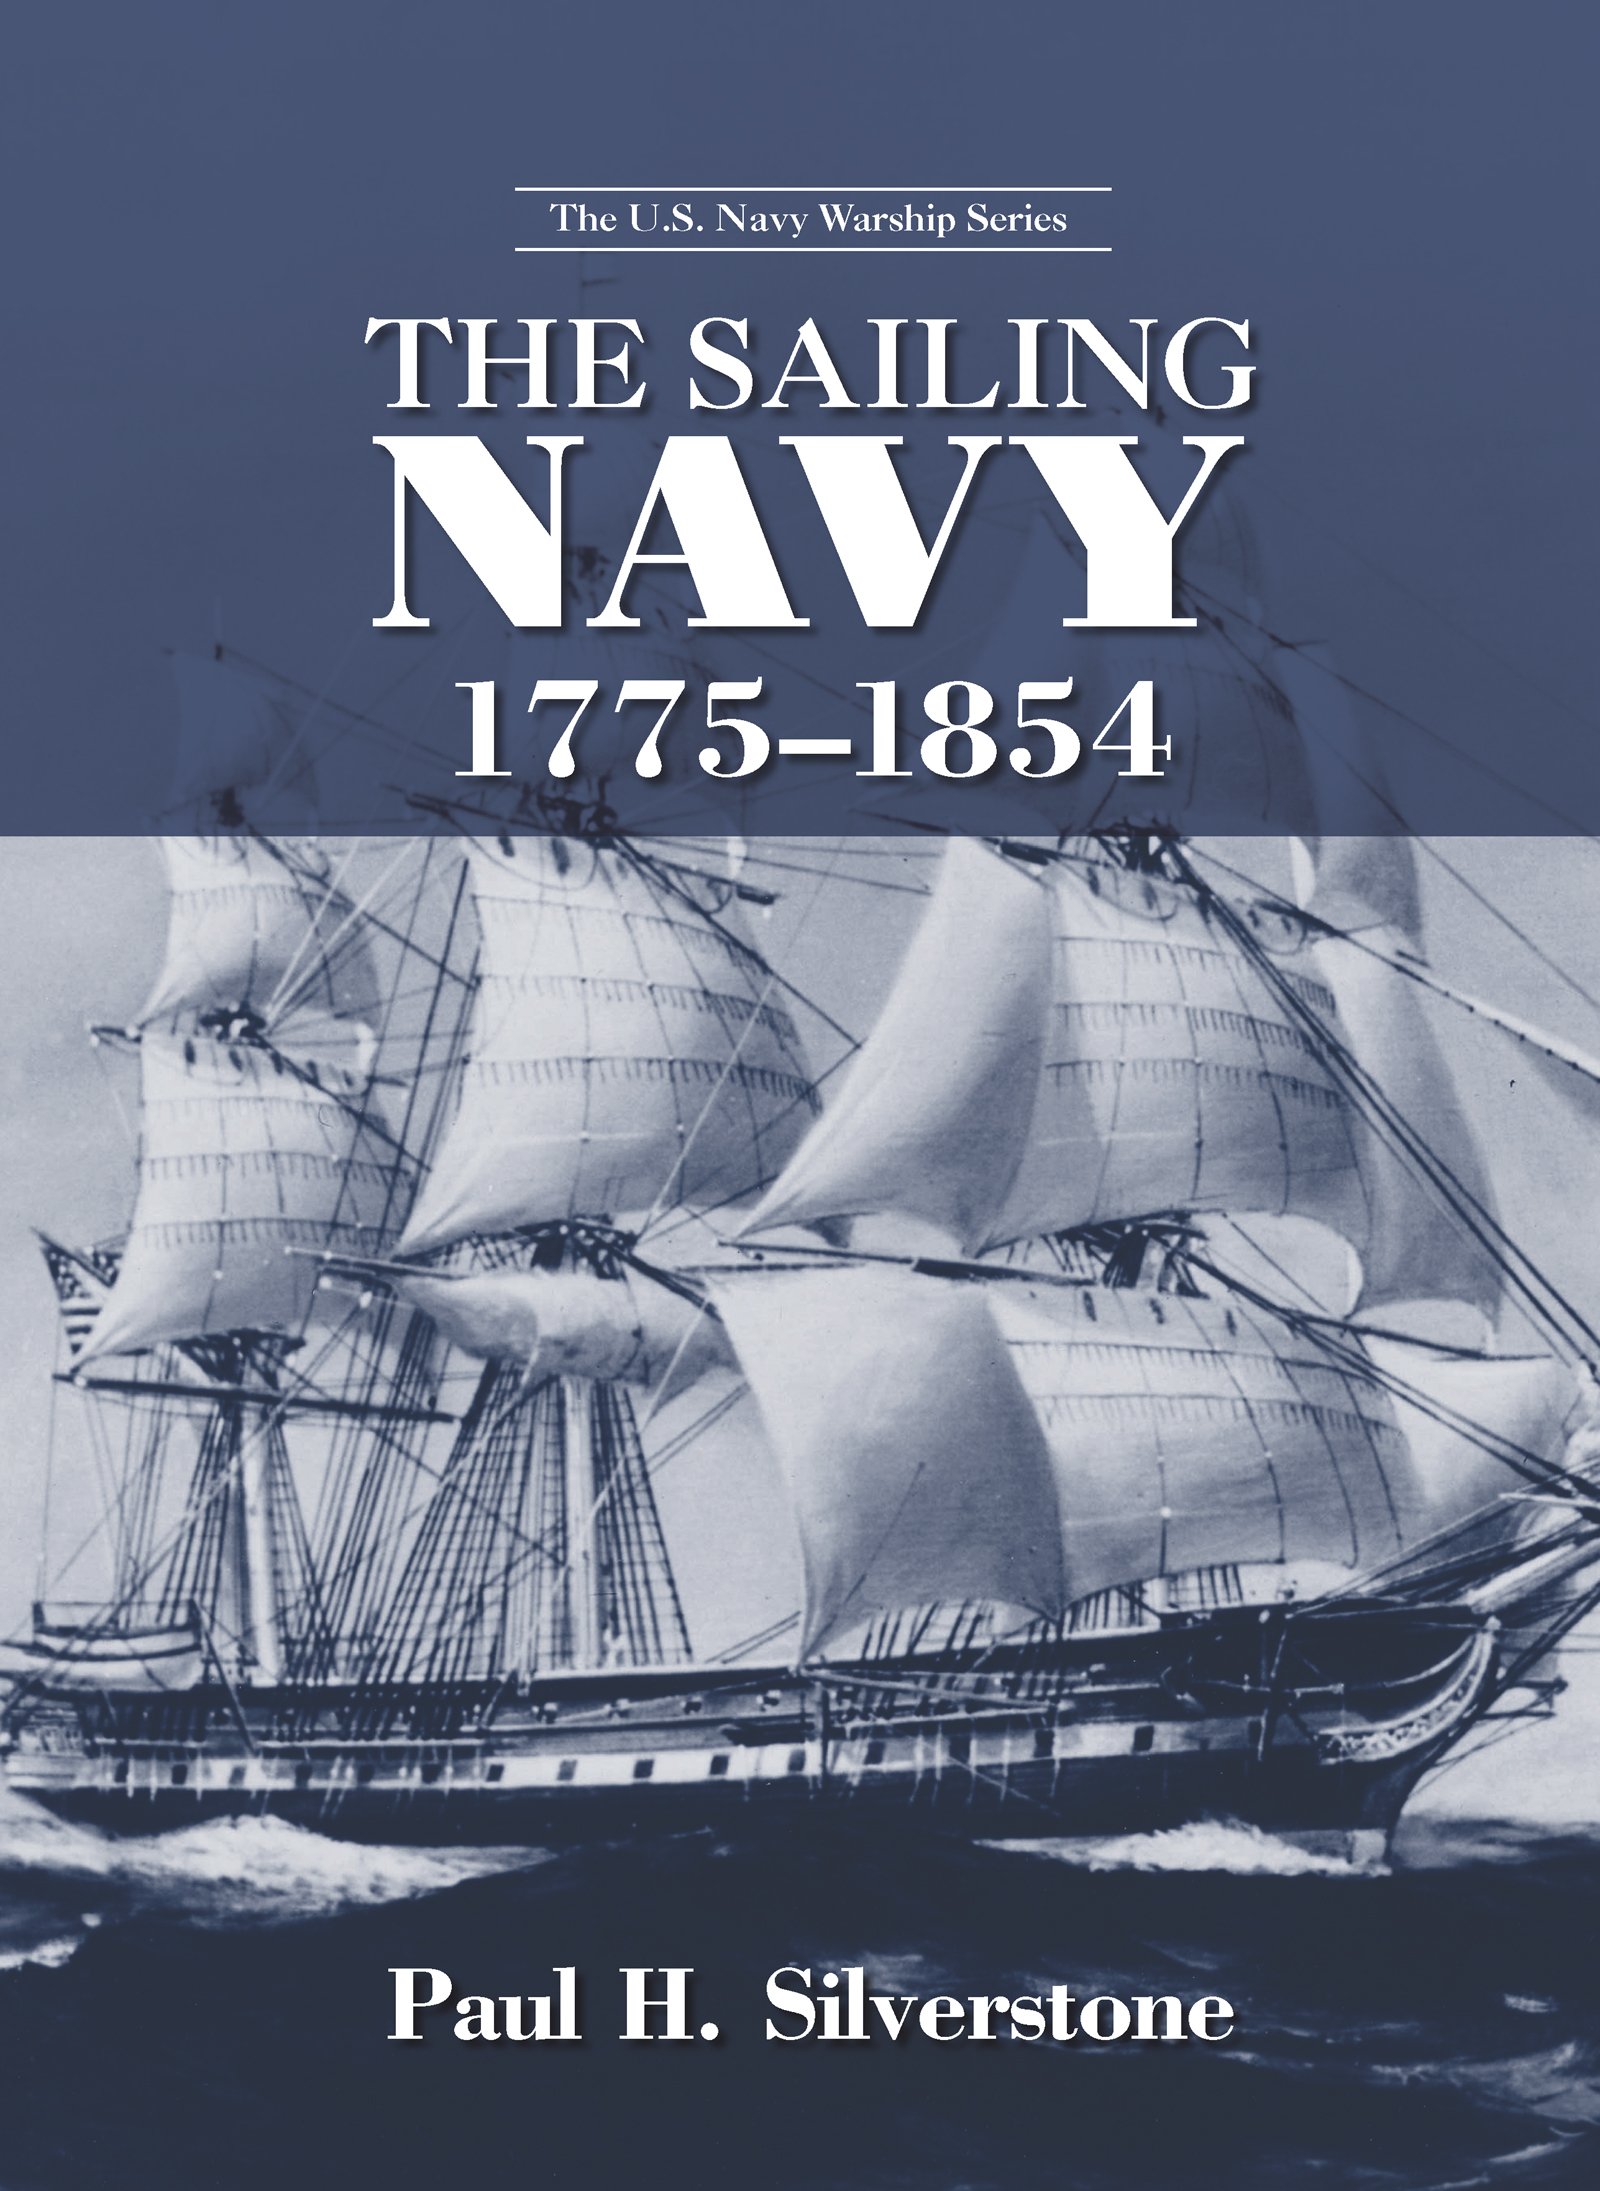 The Sailing Navy, 1775-1854 book cover